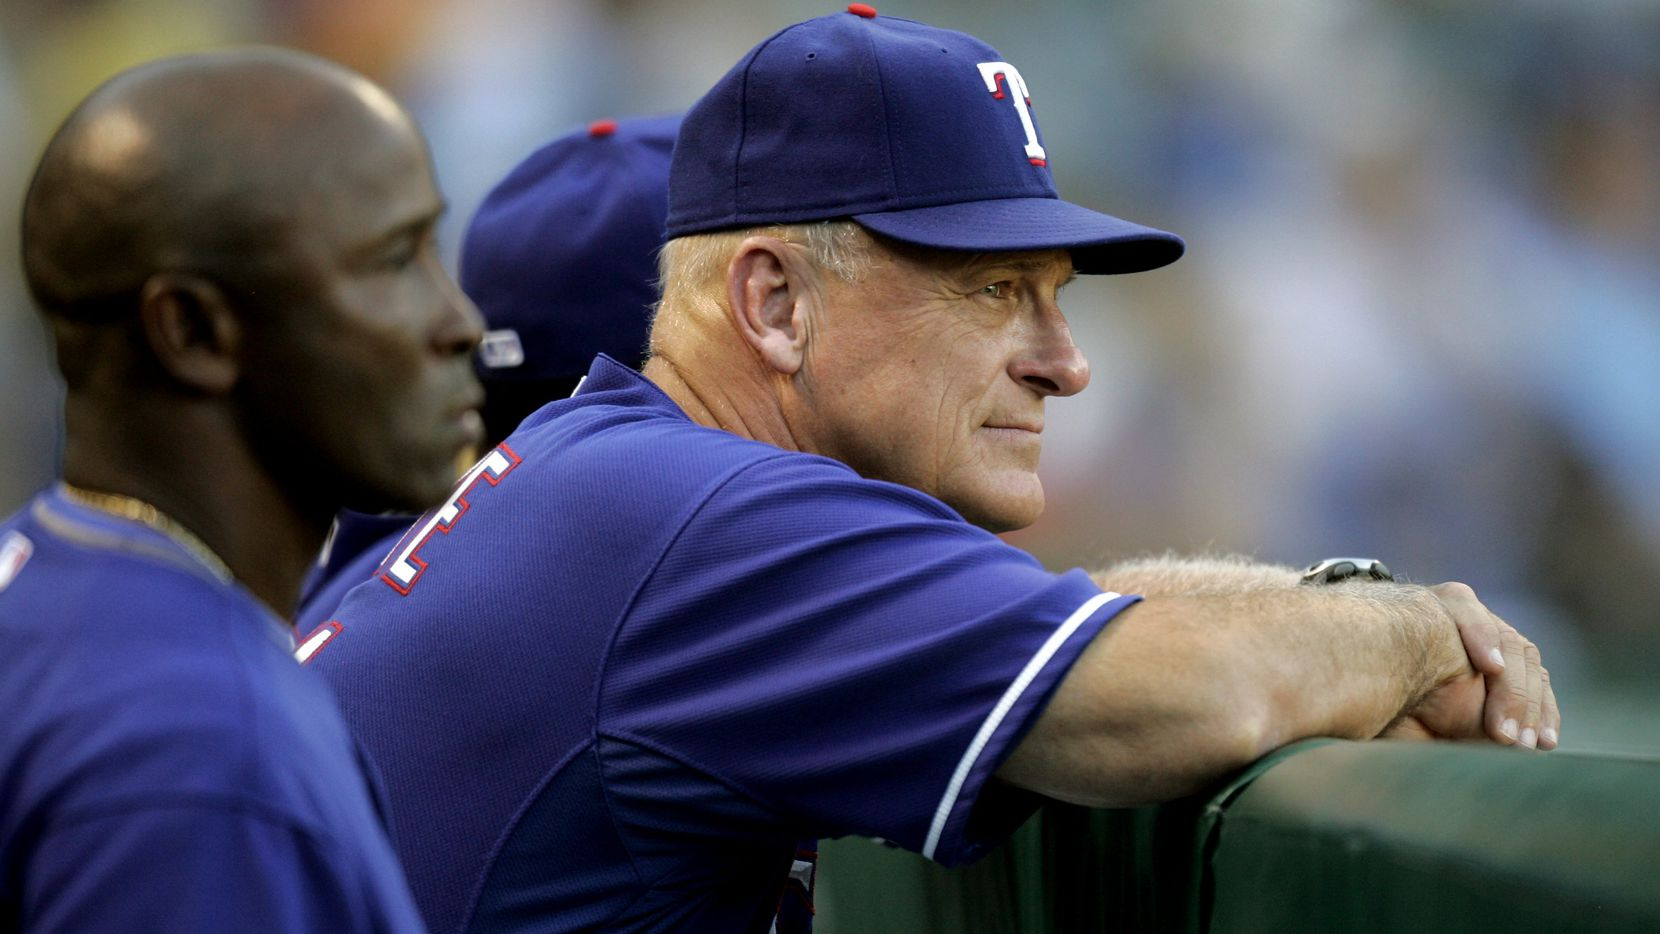 Texas Rangers first base coach Gary Pettis, left, and bench coach Art Howe, center, watch the action from the dugout rail against the Seattle Mariners at Rangers Ballpark in Arlington Monday, July 28, 2008.